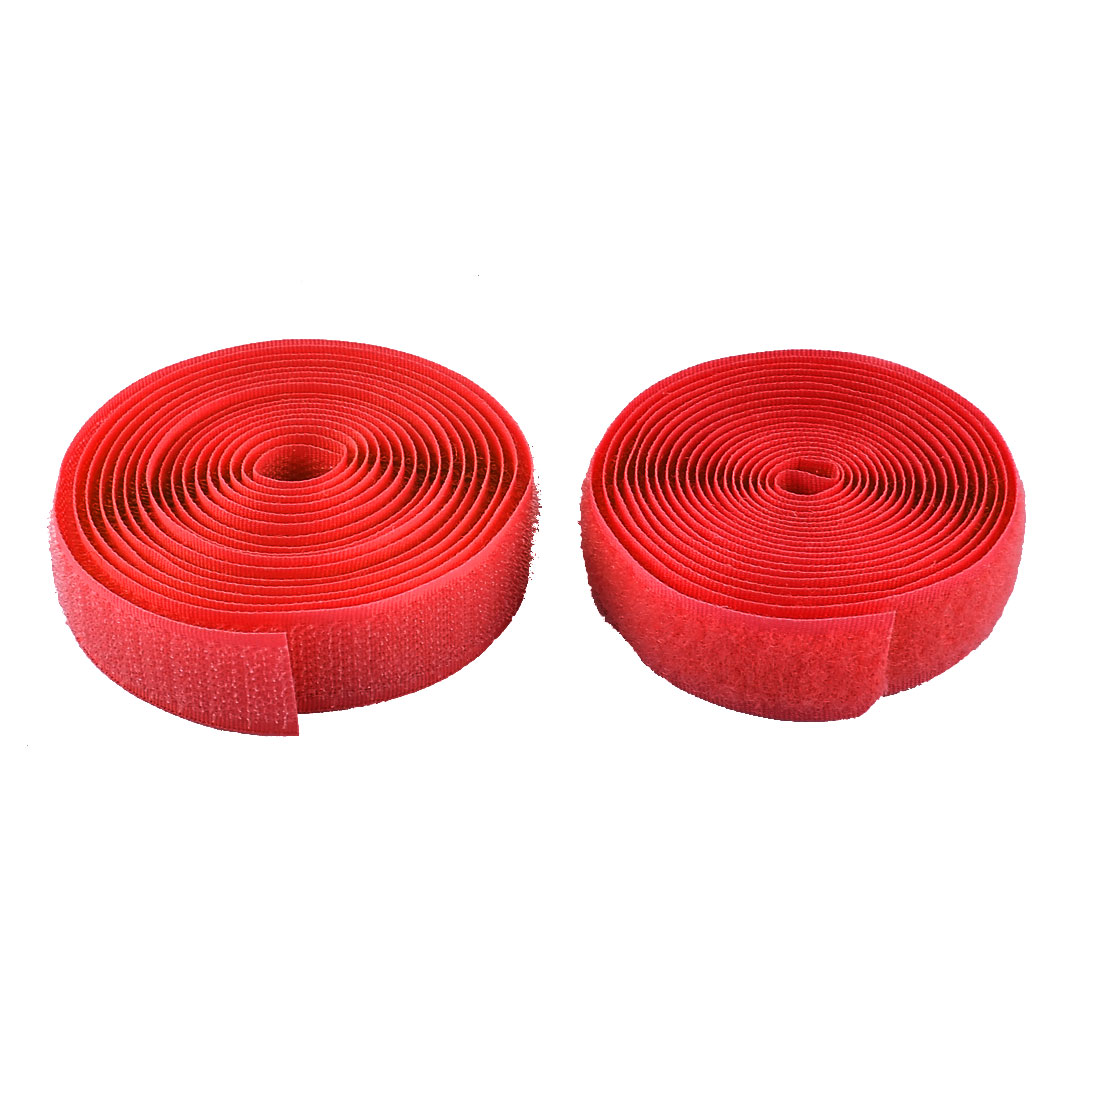 Nylon Sticky Hook Loop Back Self Adhesive Fastener Tape Roll Red 2 in 1